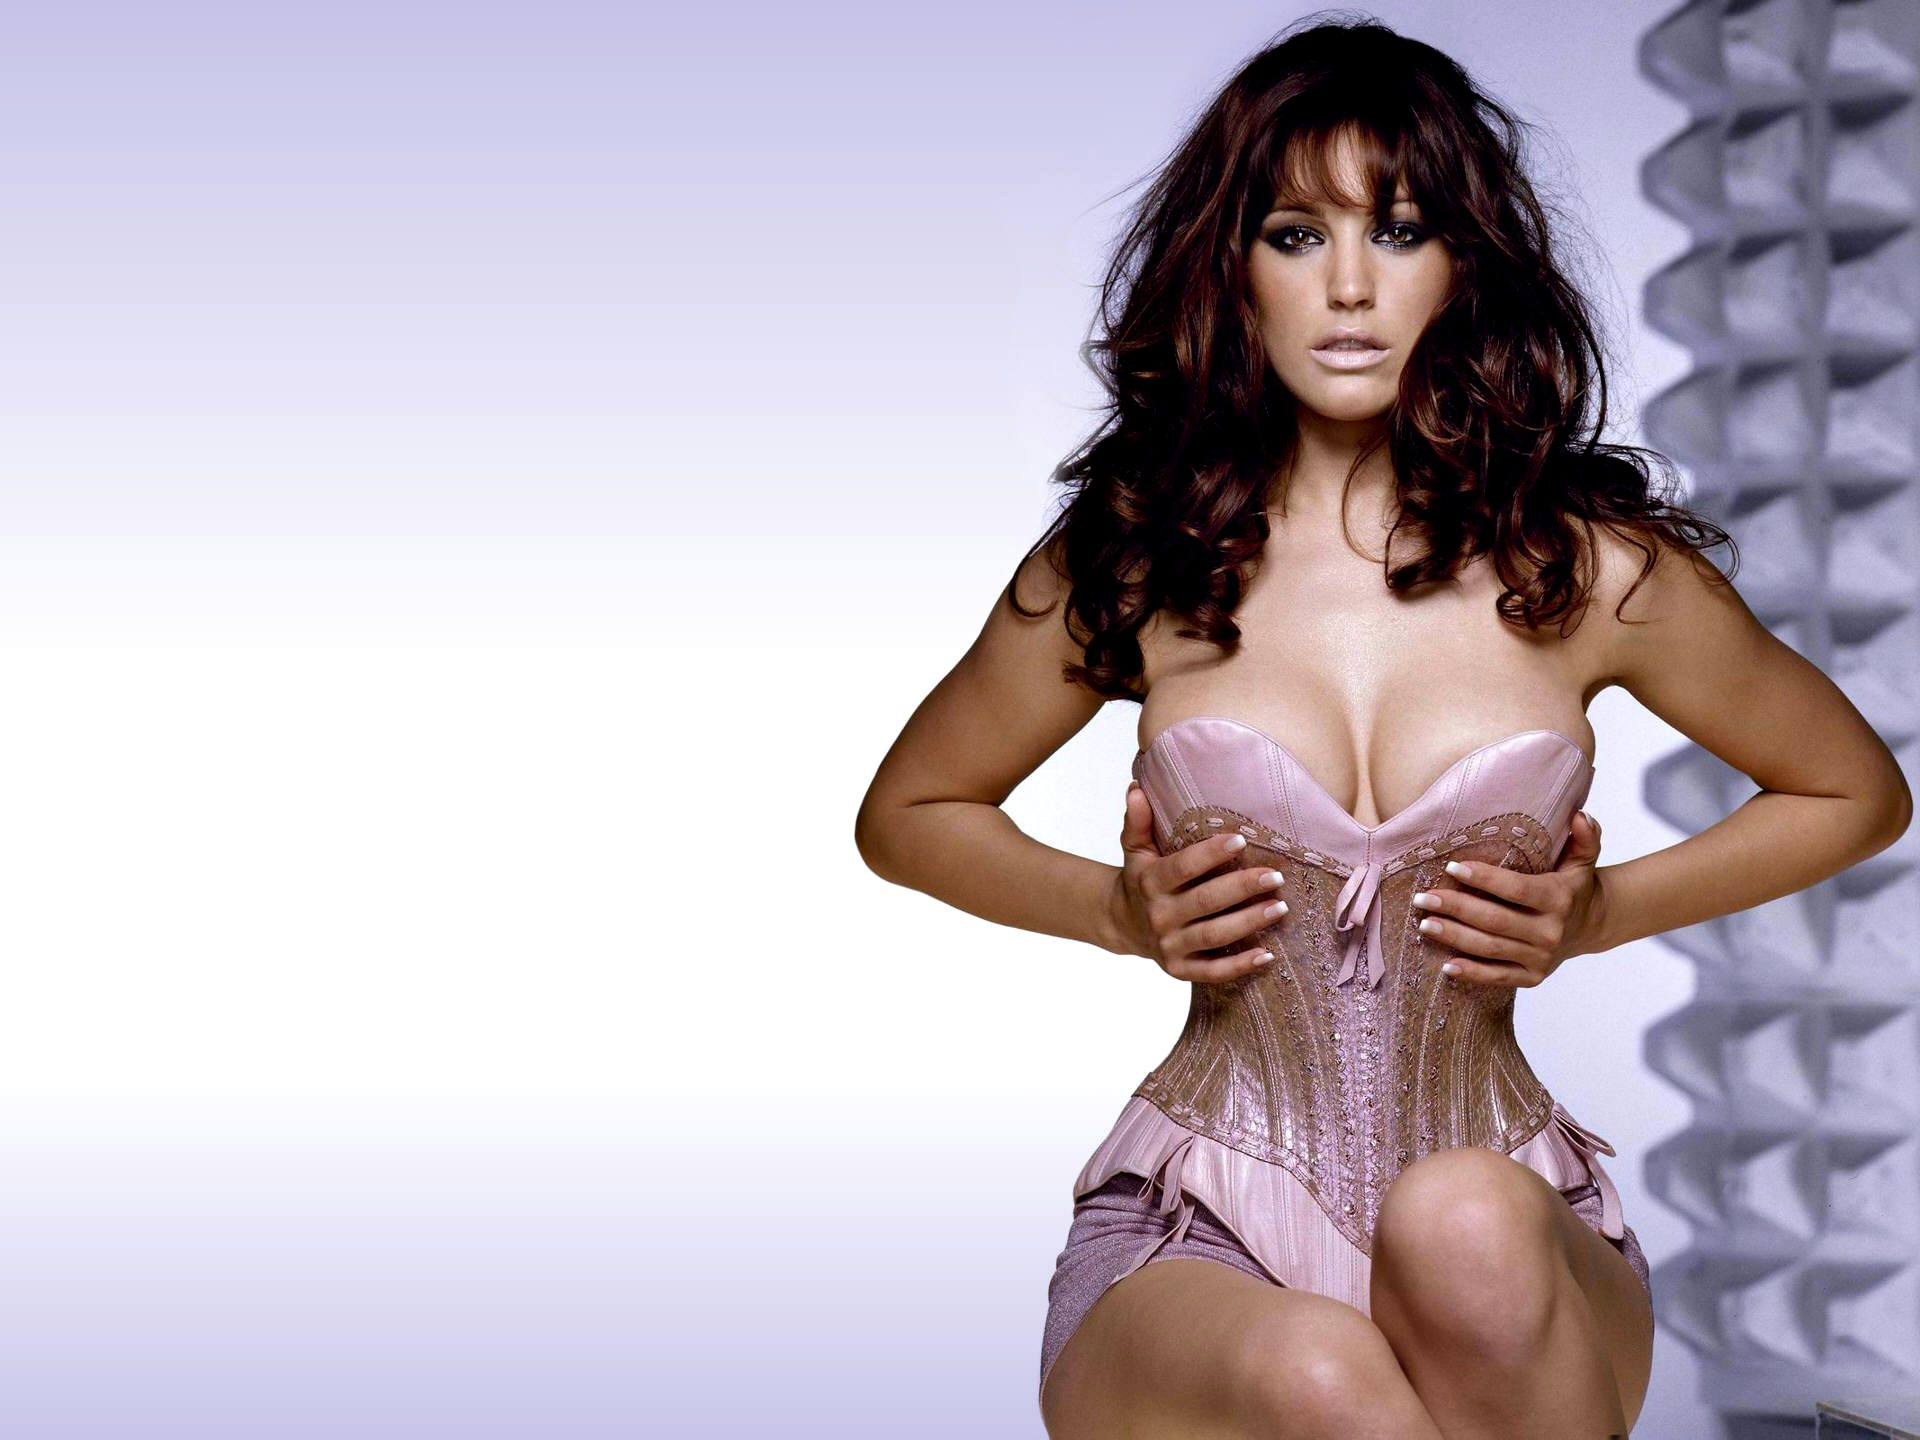 1920x1440 - Kelly Brook Wallpapers 8